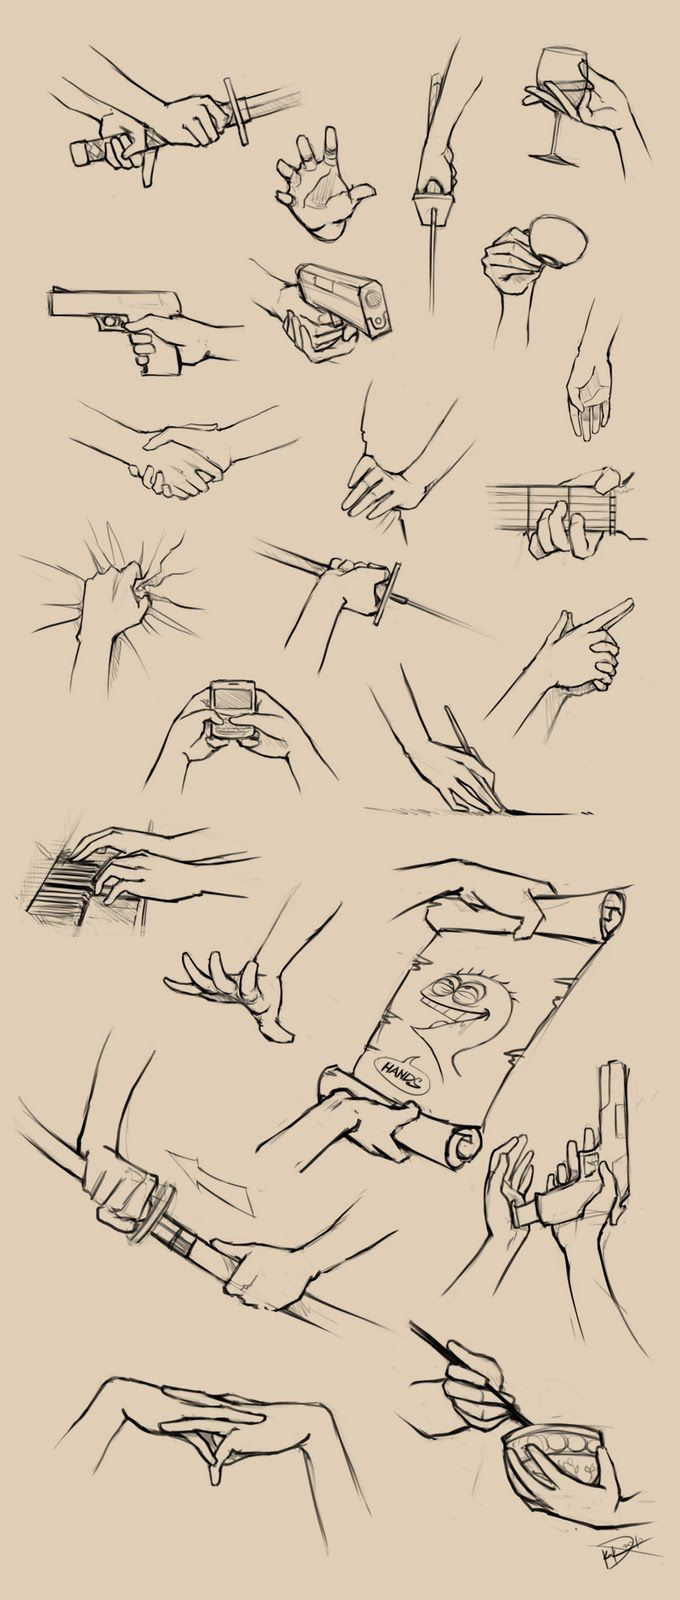 How to draw hands gripping bunch of things. I love how cheese from fosters home for imaginary friends is there